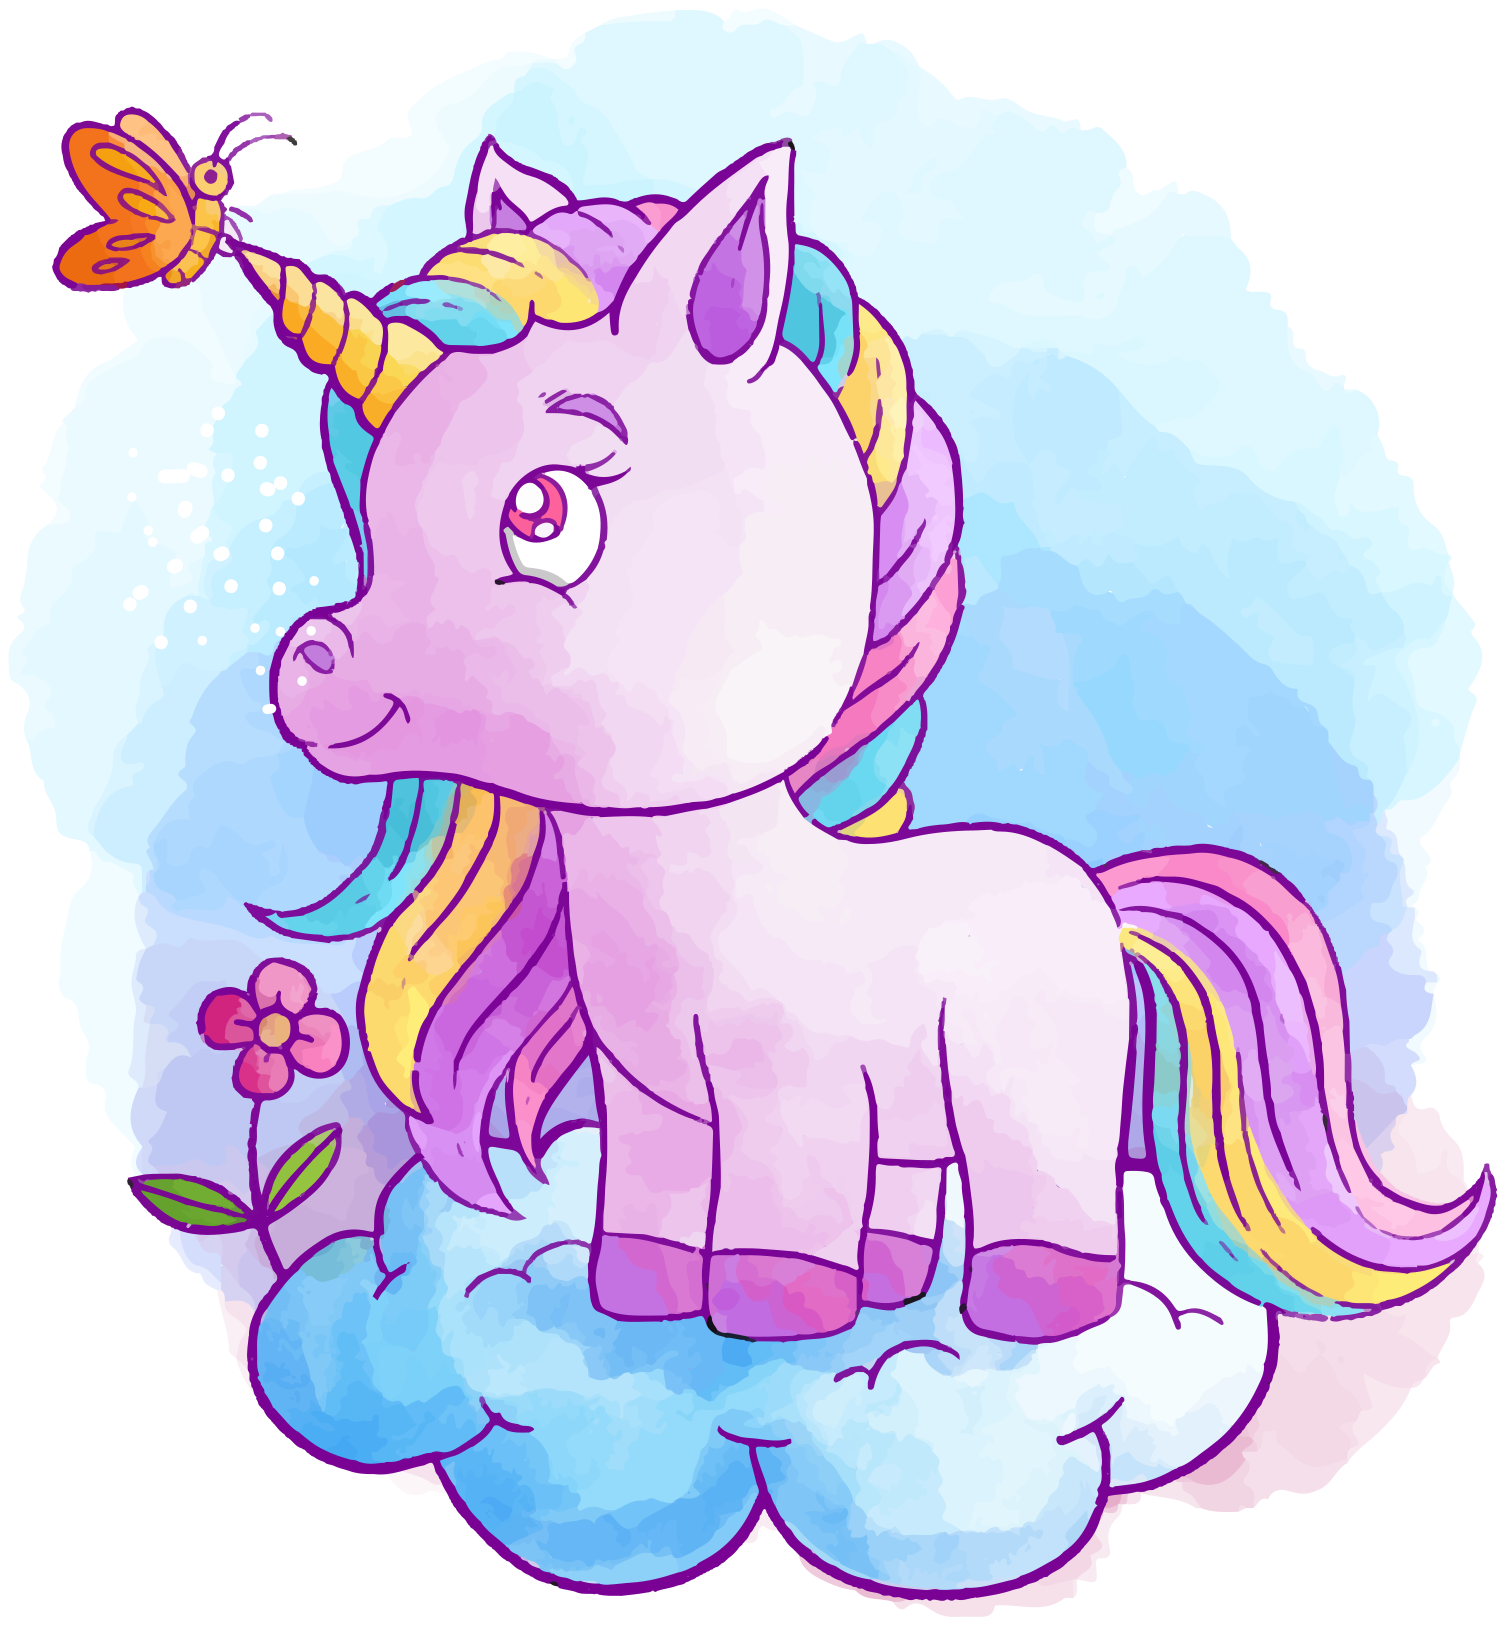 TenStickers. Unicorn with butterfly and rainbow cinema sticker. Bring that fairy fantast story of a unicorn to the bedroom of your kid with our amazing illustration decal of a colorful baby unicorn.